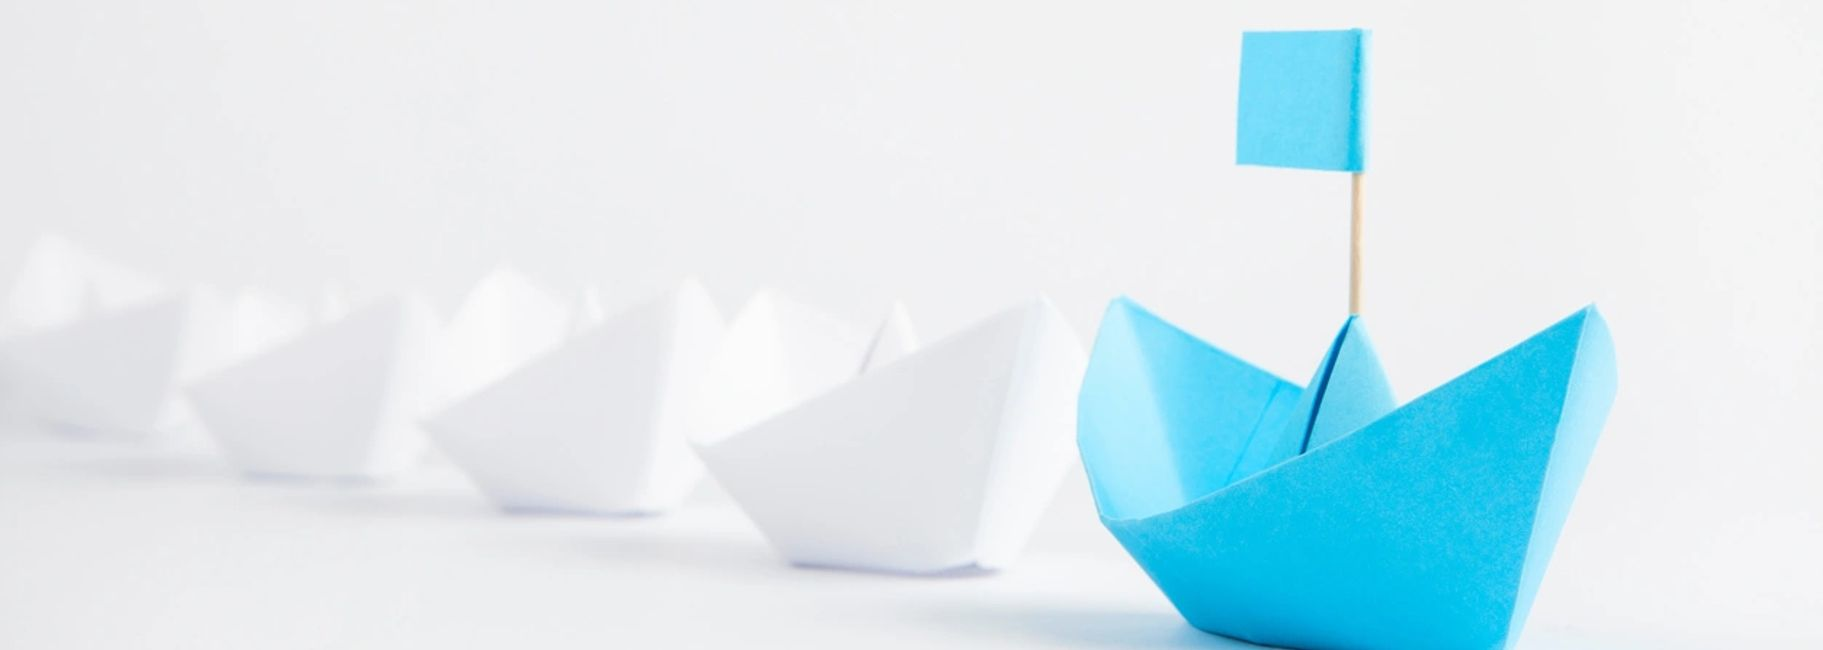 four white and one blue boat made out of paper.